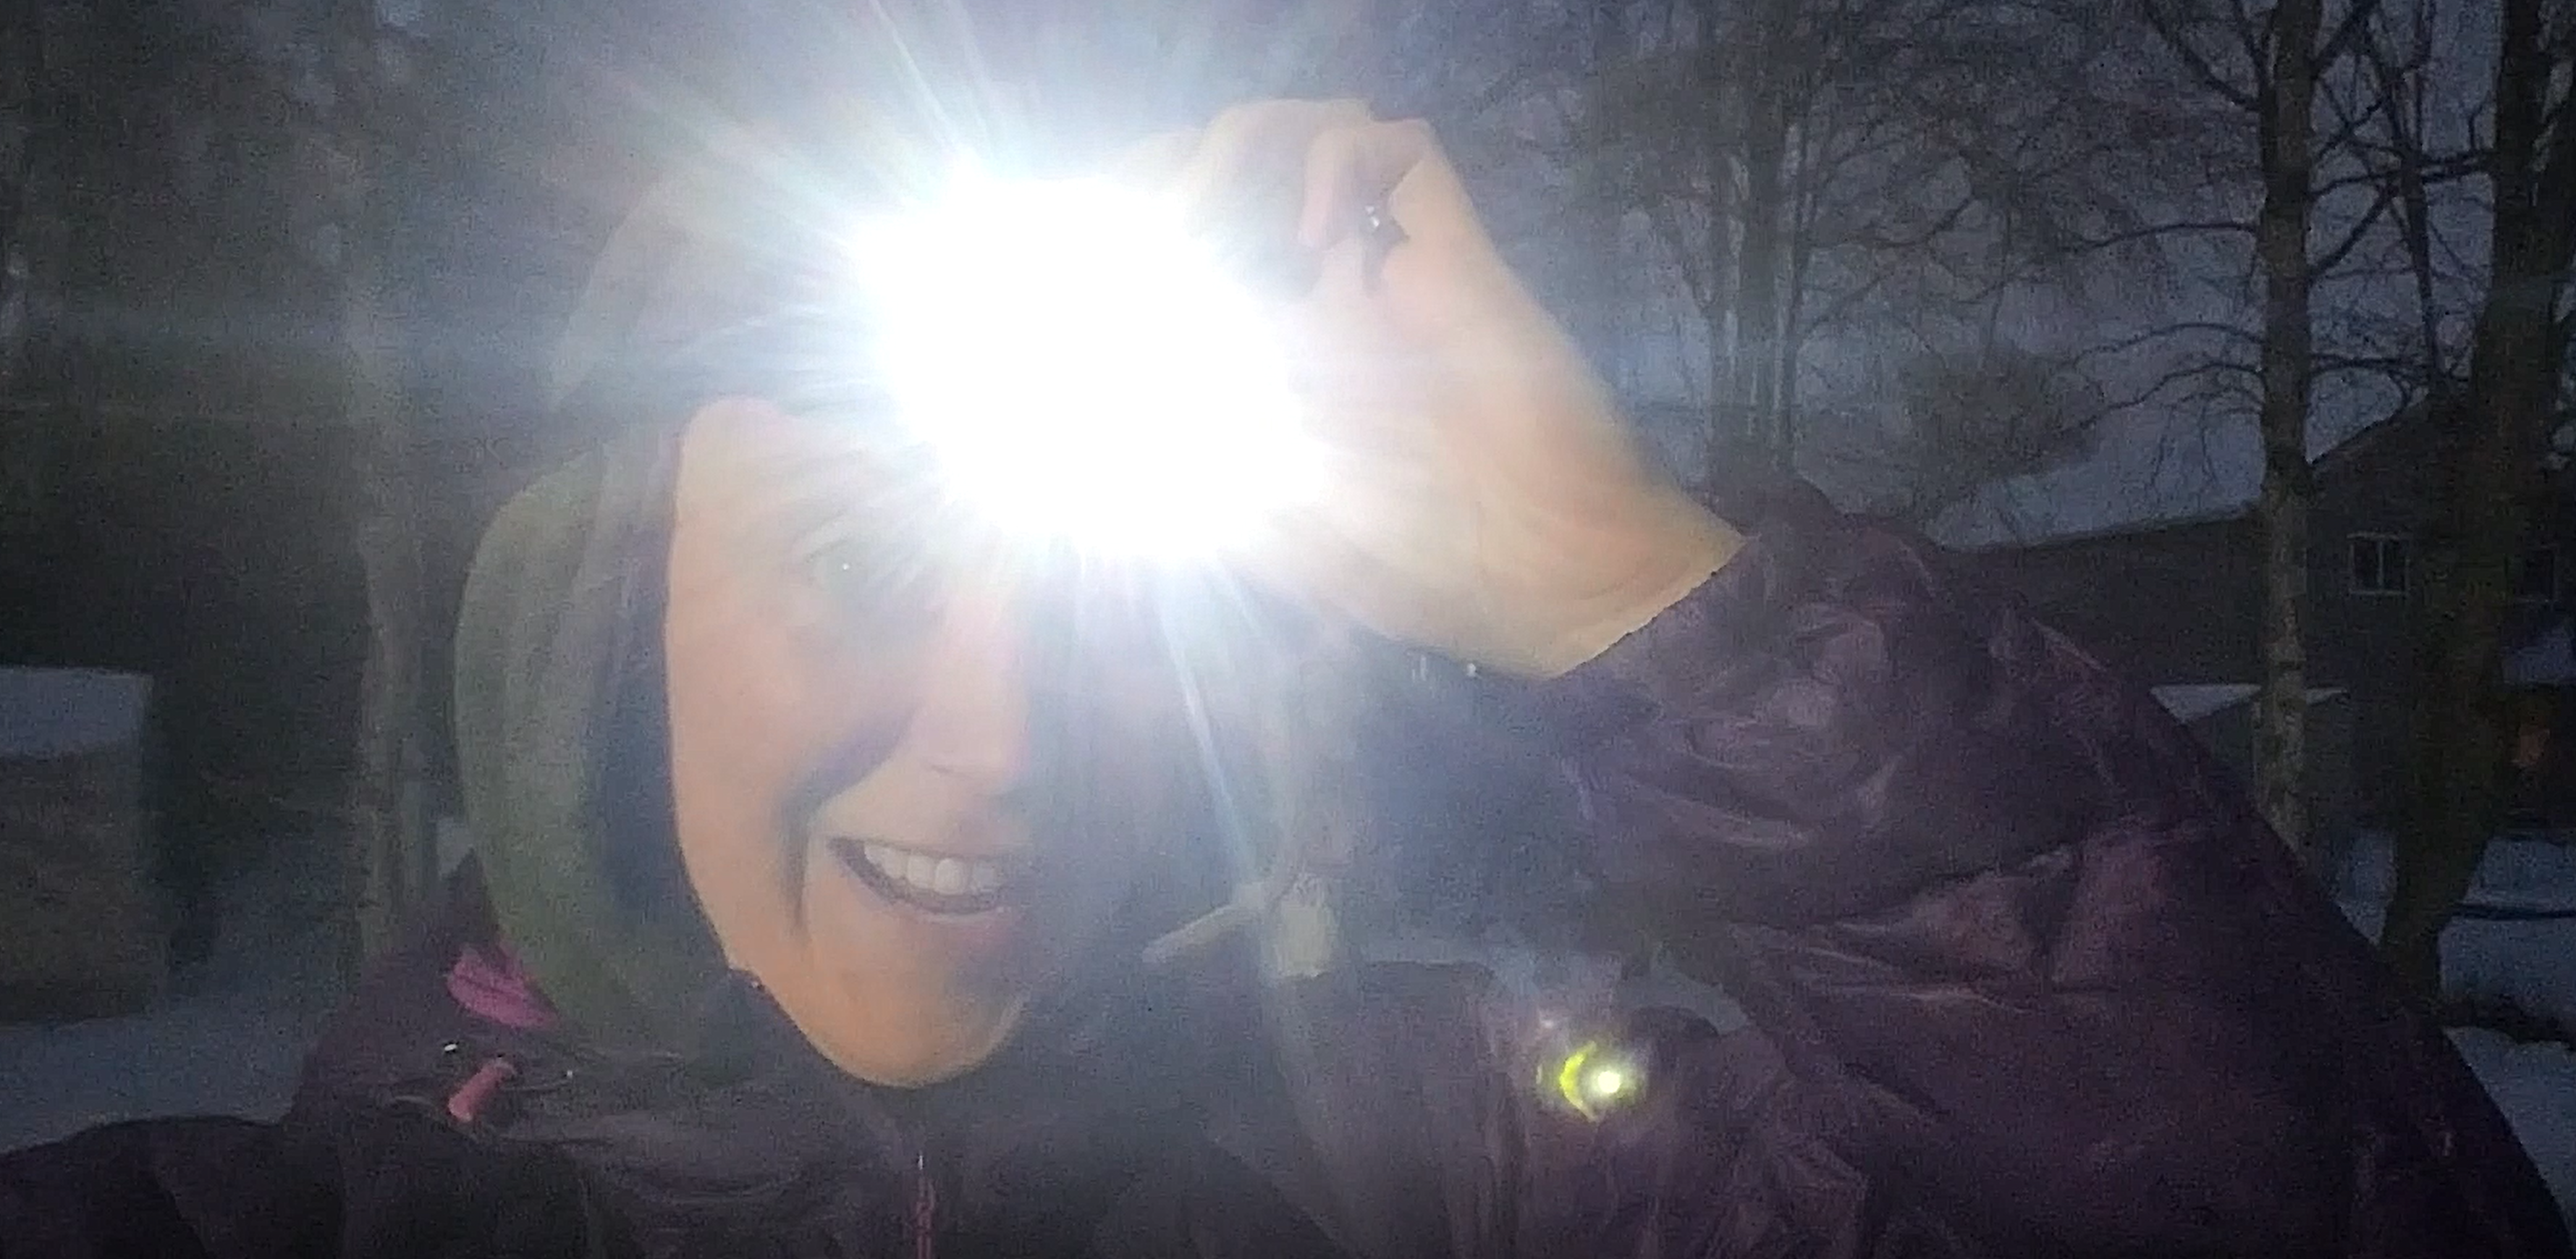 Ashley Taborsky with headlamp in winter